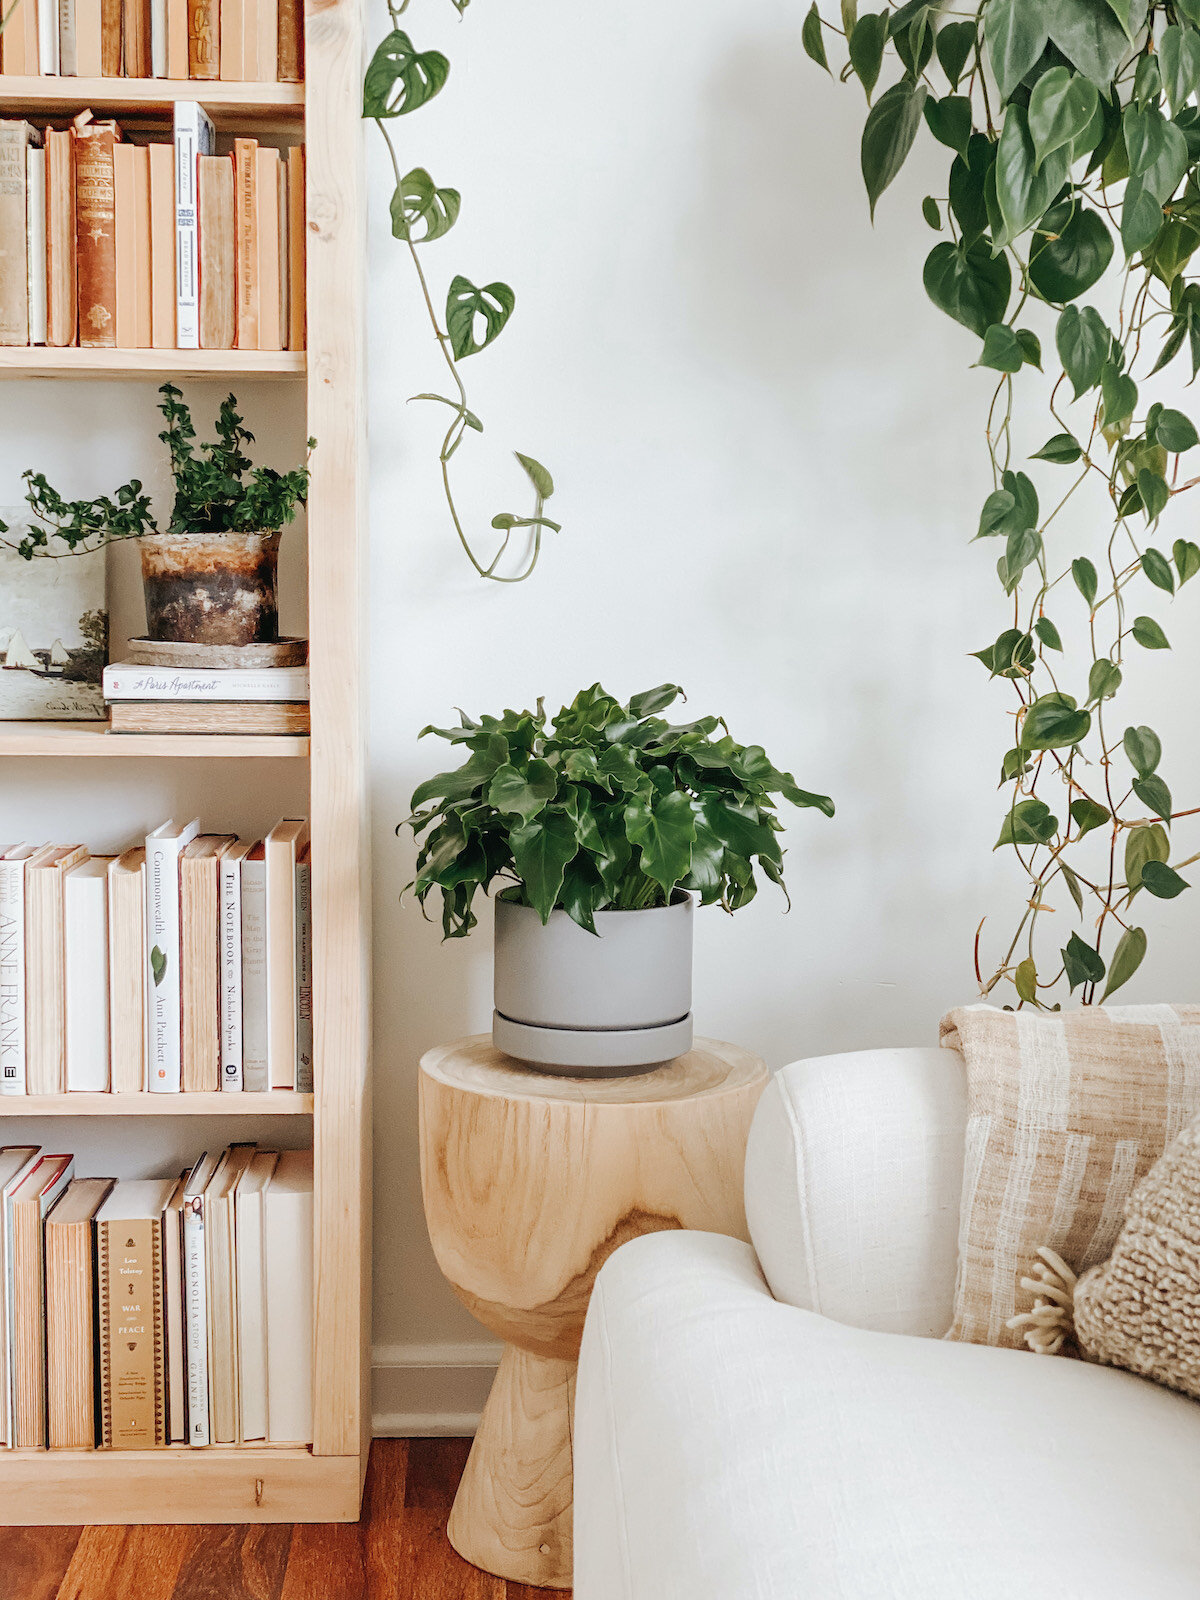 6 Secrets Of Scandinavian Design And How To Use Them La Residence Plant Care Tips And More